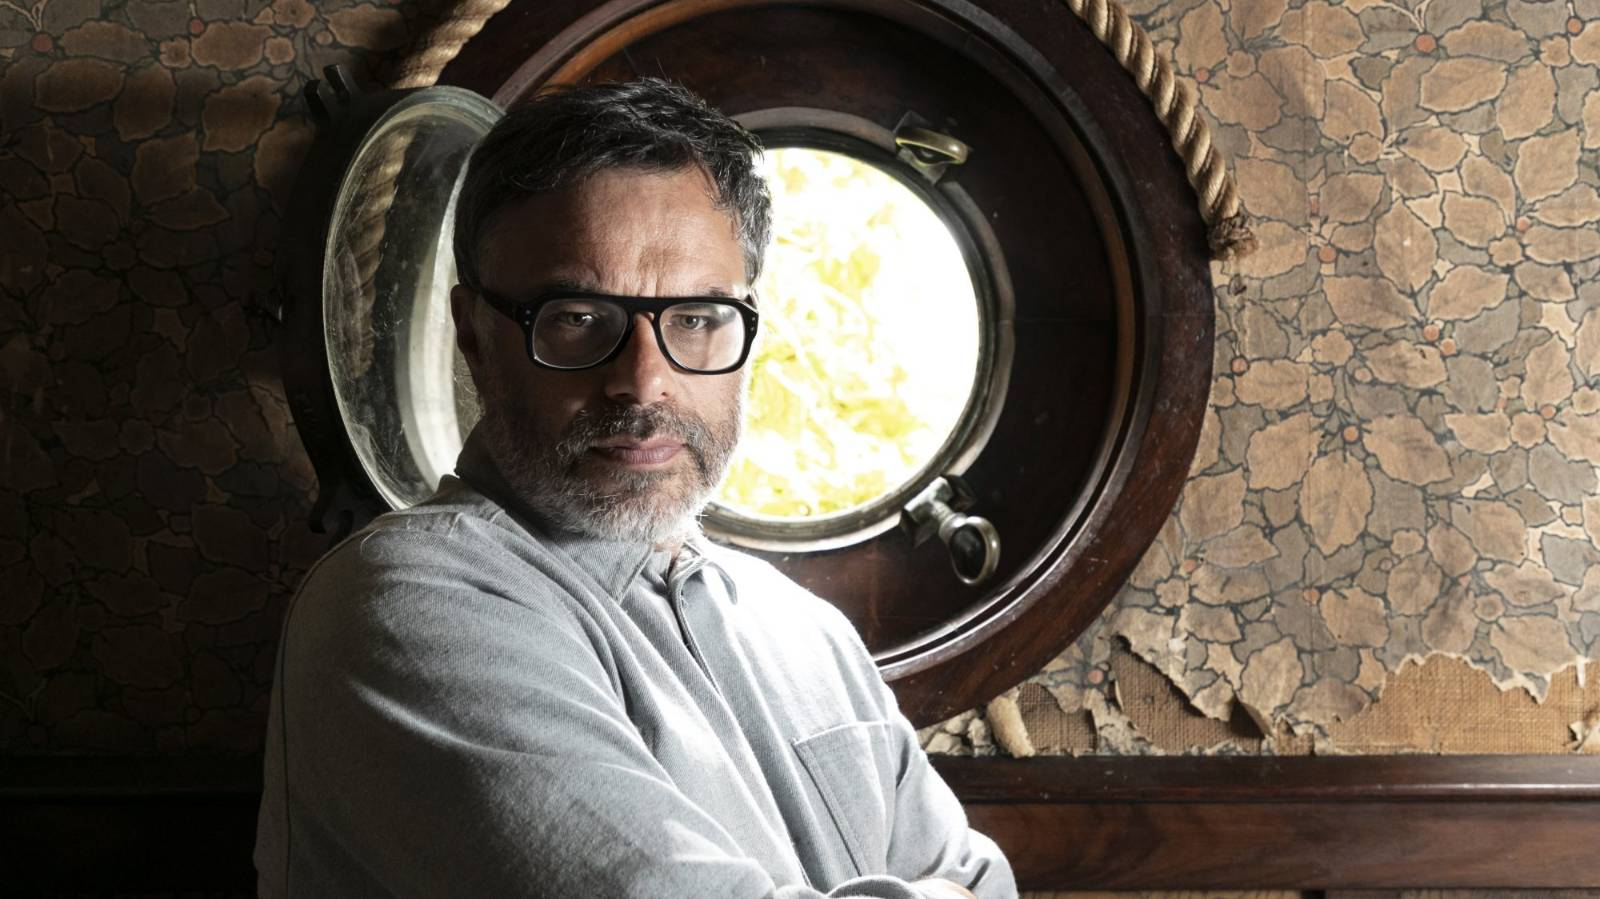 Jemaine Clement just wants to be normal